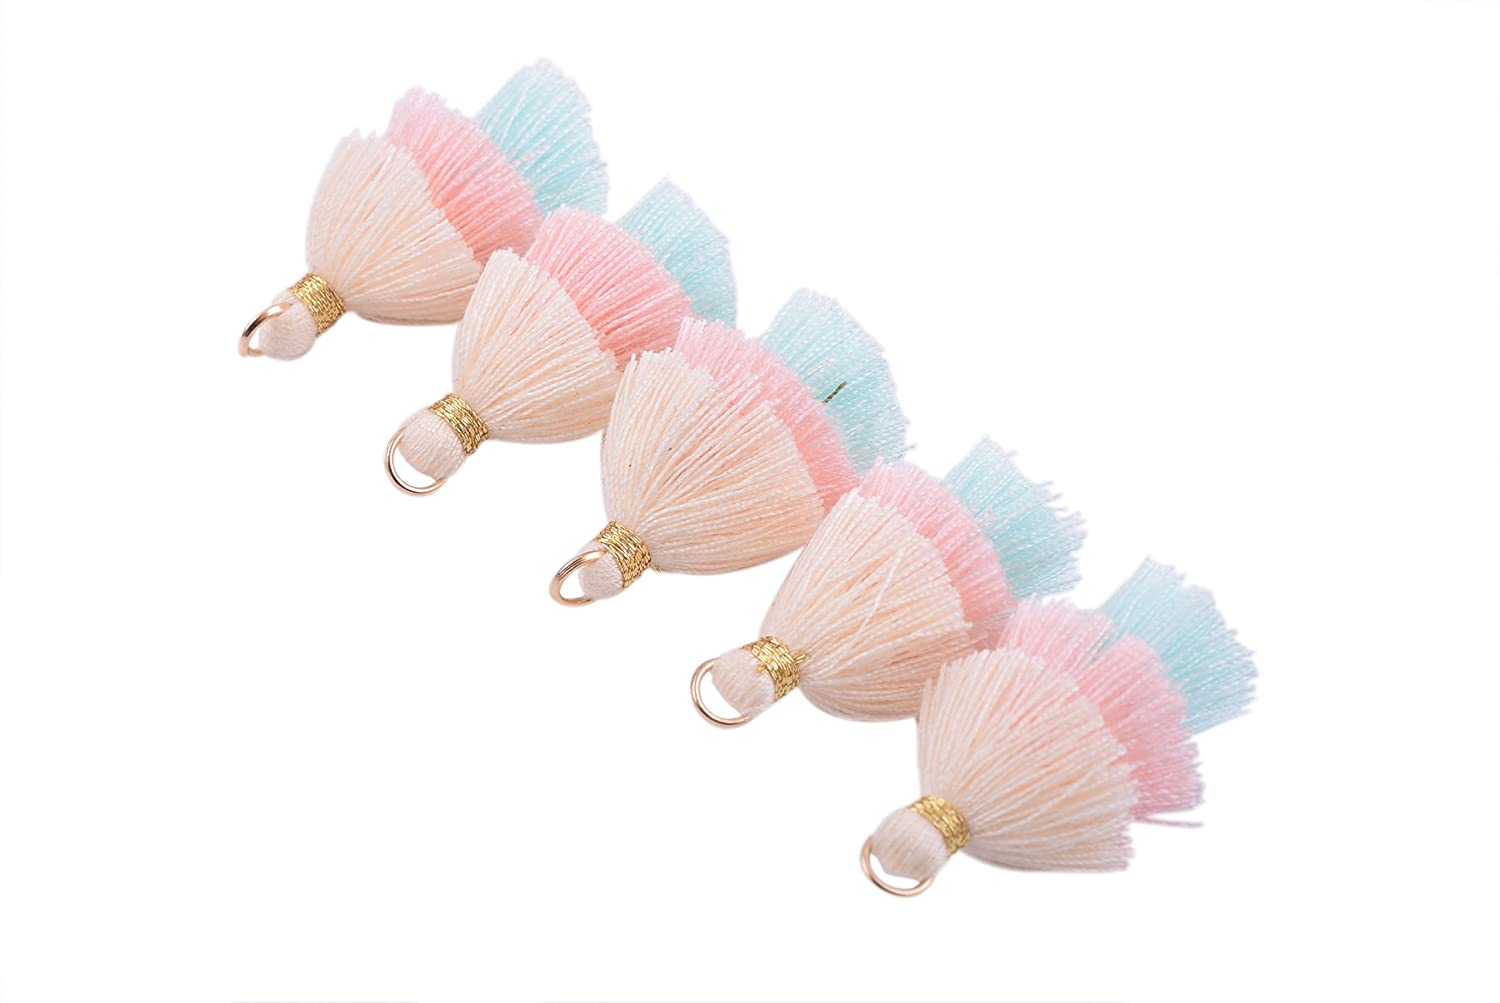 Tiny Tri-Layered Tassels with Gold Jump Ring for Jewelry Making 3.5cm Clothing KONMAY 10pcs 1.4